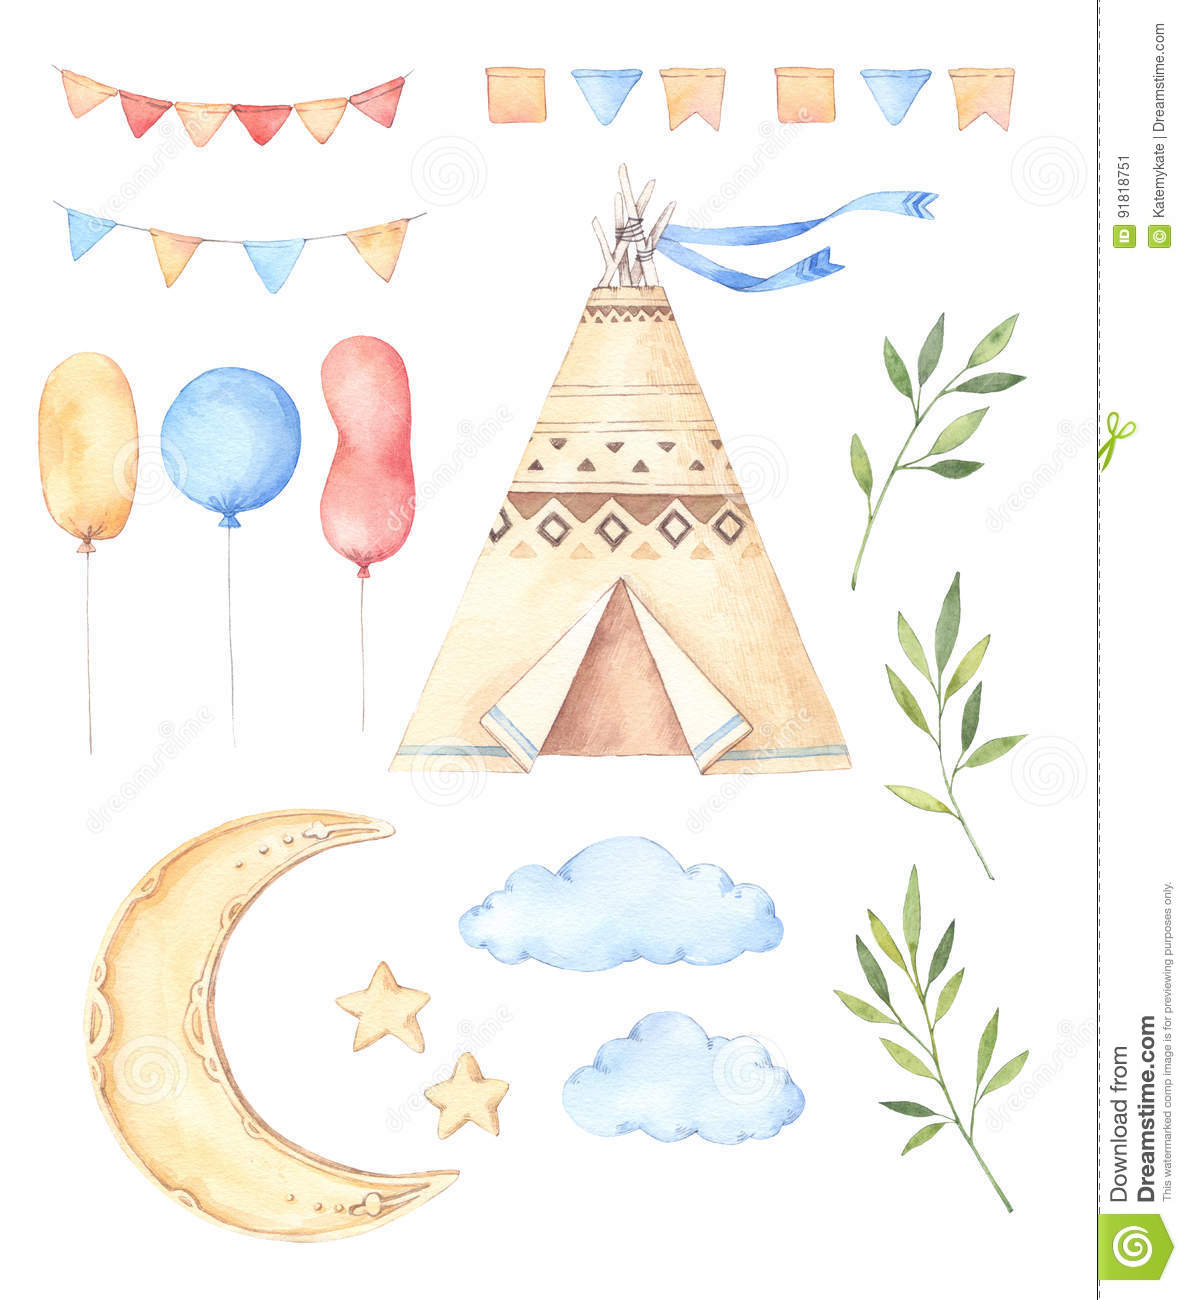 Watercolor illustrations - Kids tent, moon and stars, balloons,